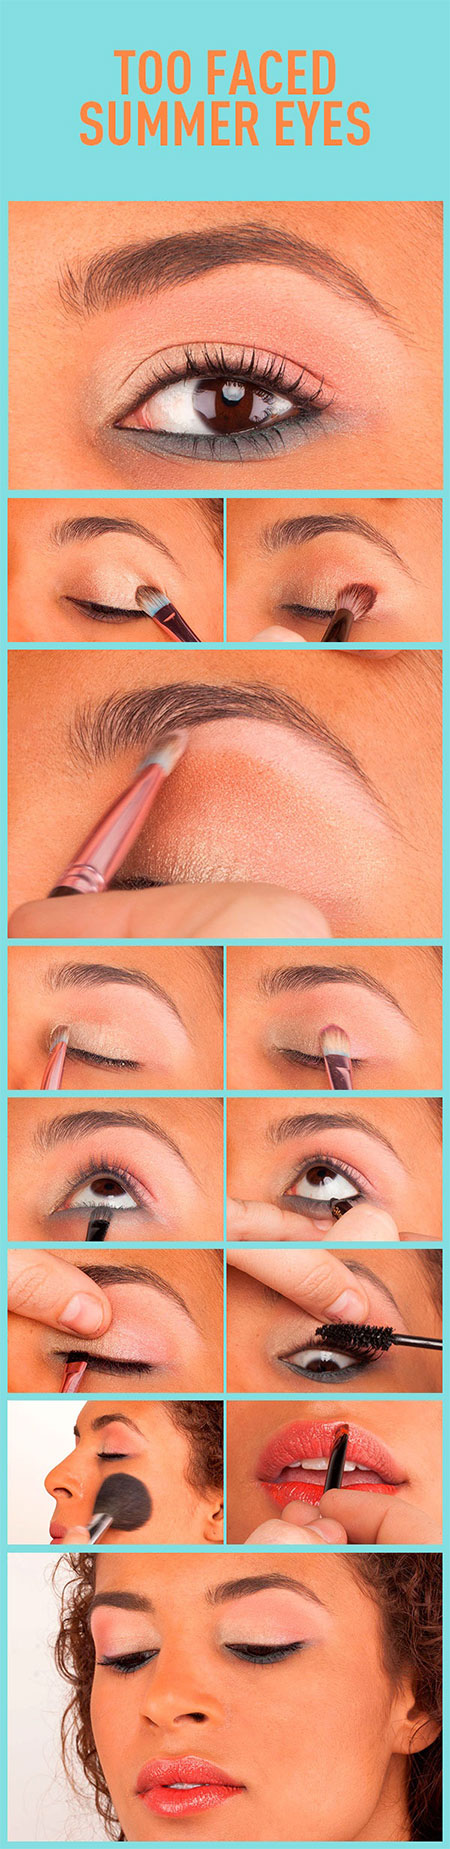 12-Simple-Summer-Eye-Make-Up-Tutorials-2014-For-Beginners-Learners-5